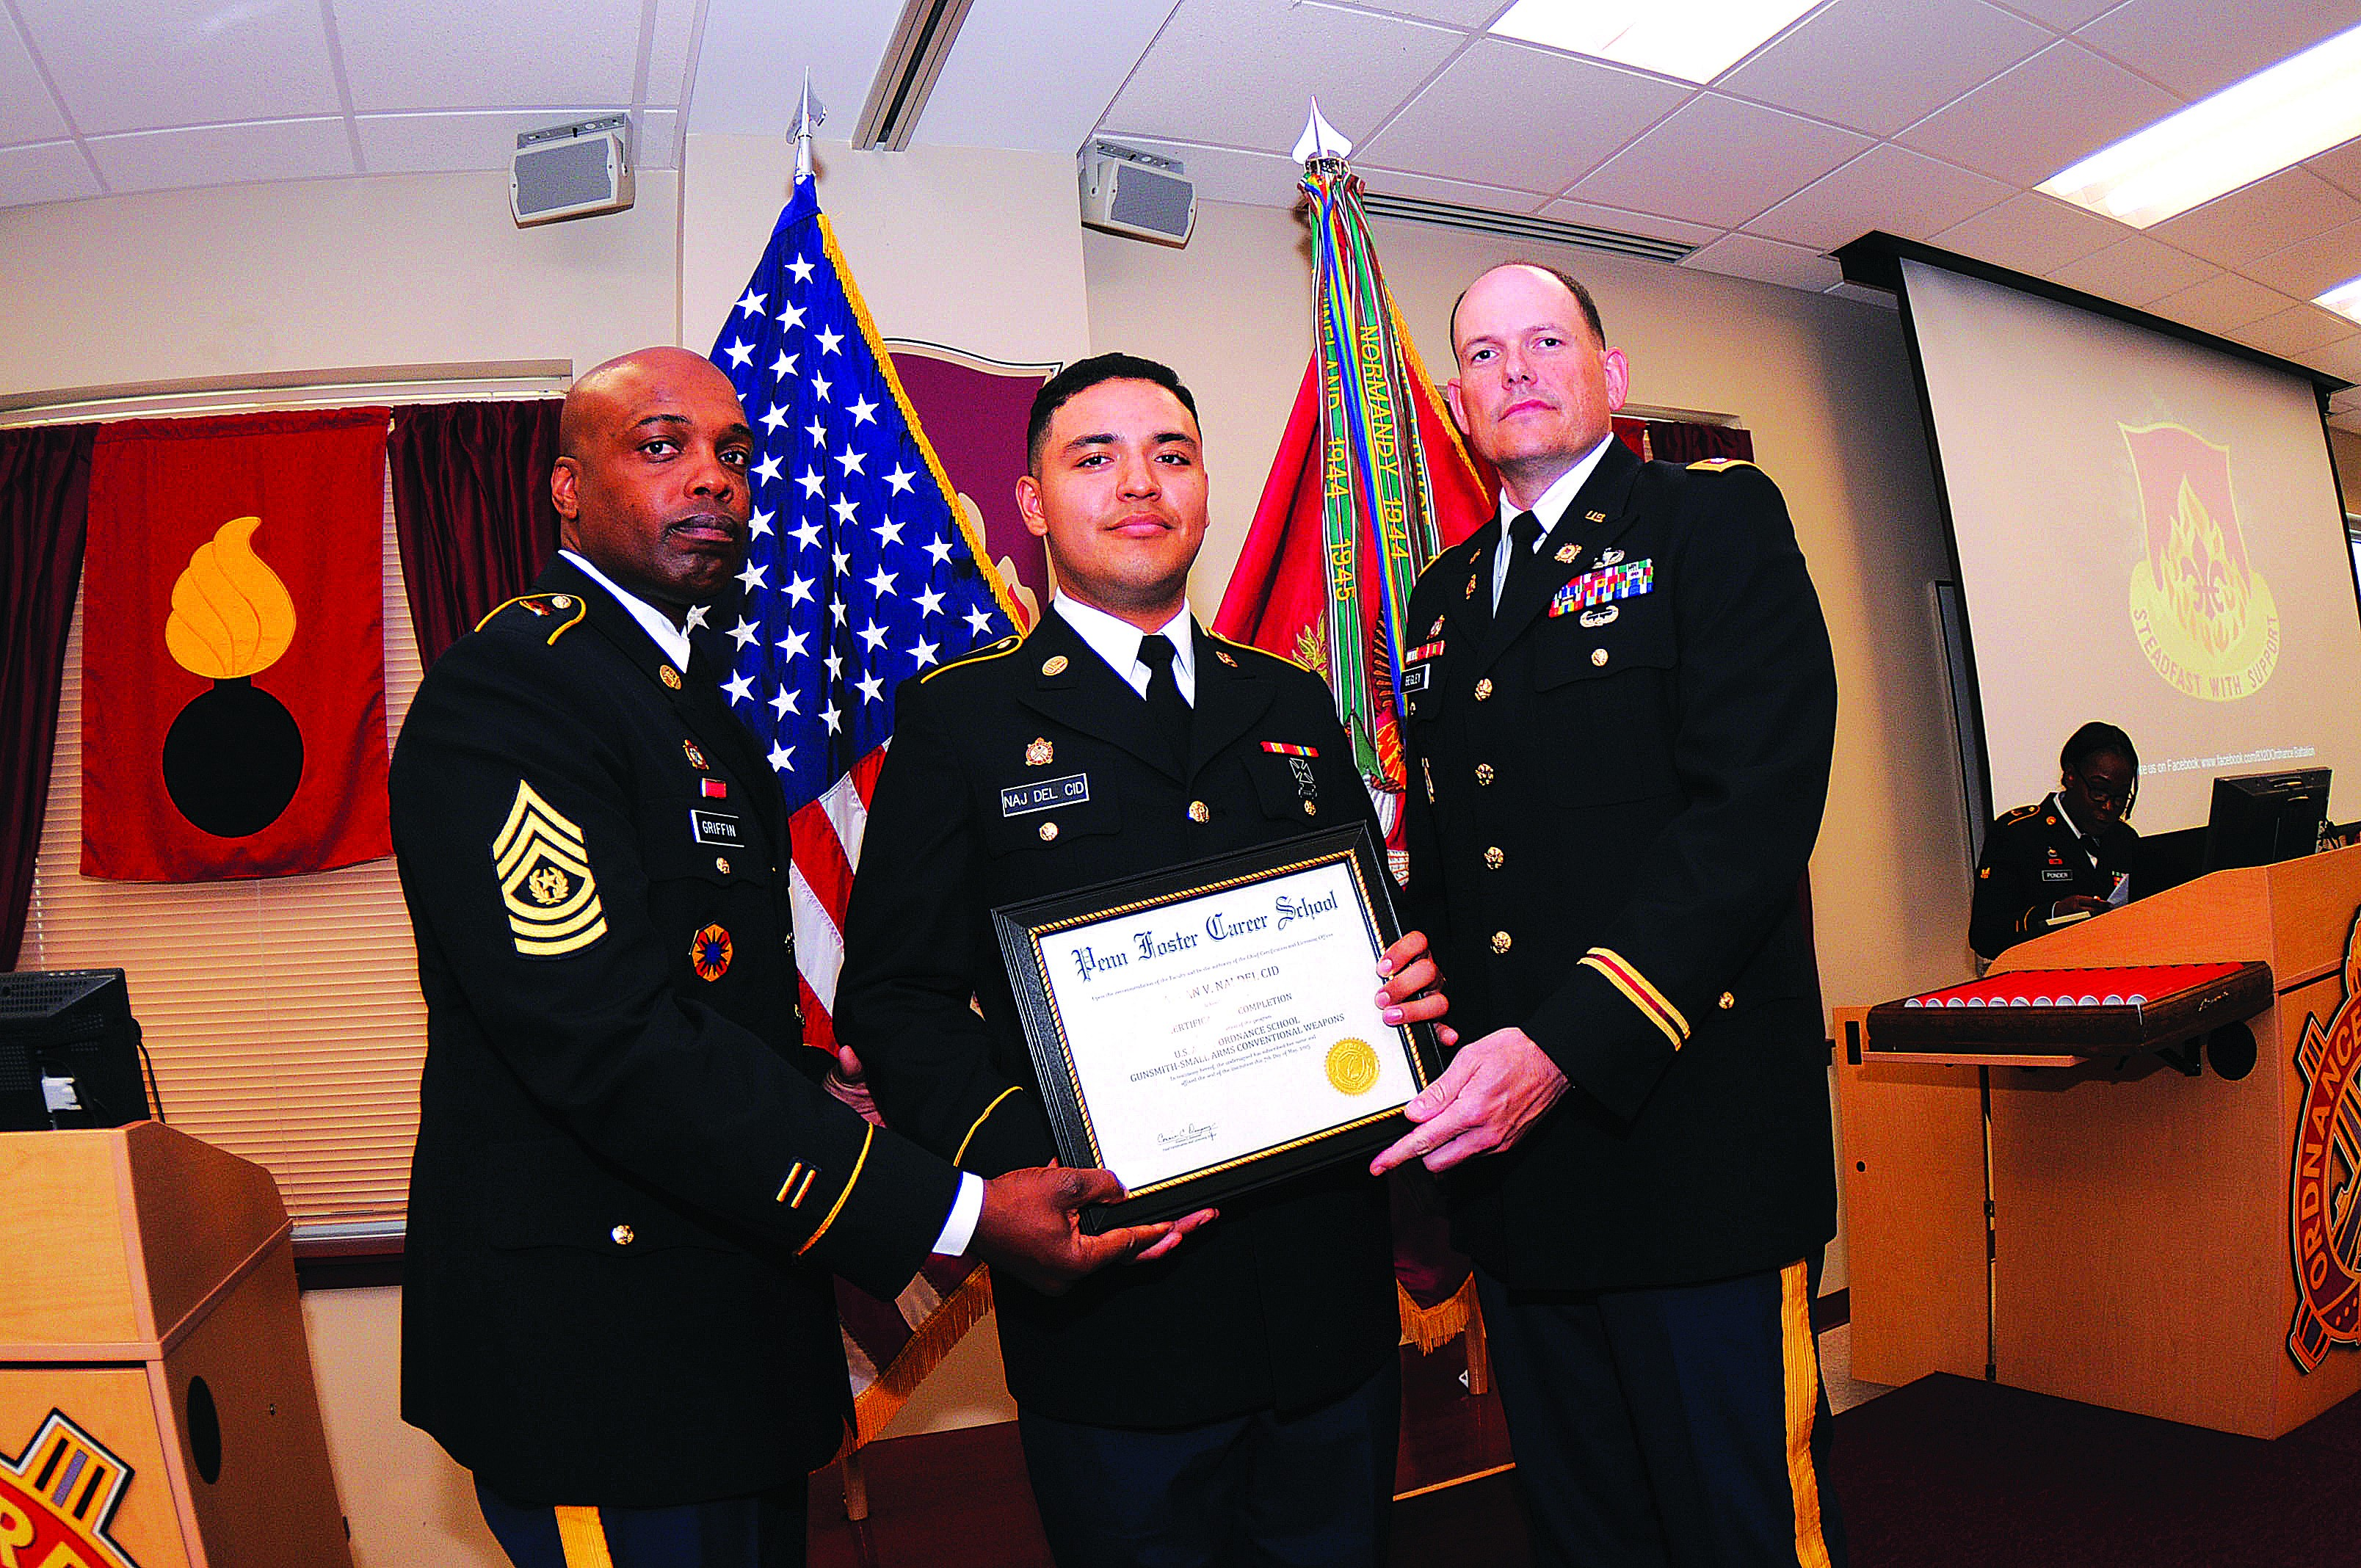 Soldier Becomes First To Gain Gunsmith Certification At Small Arms